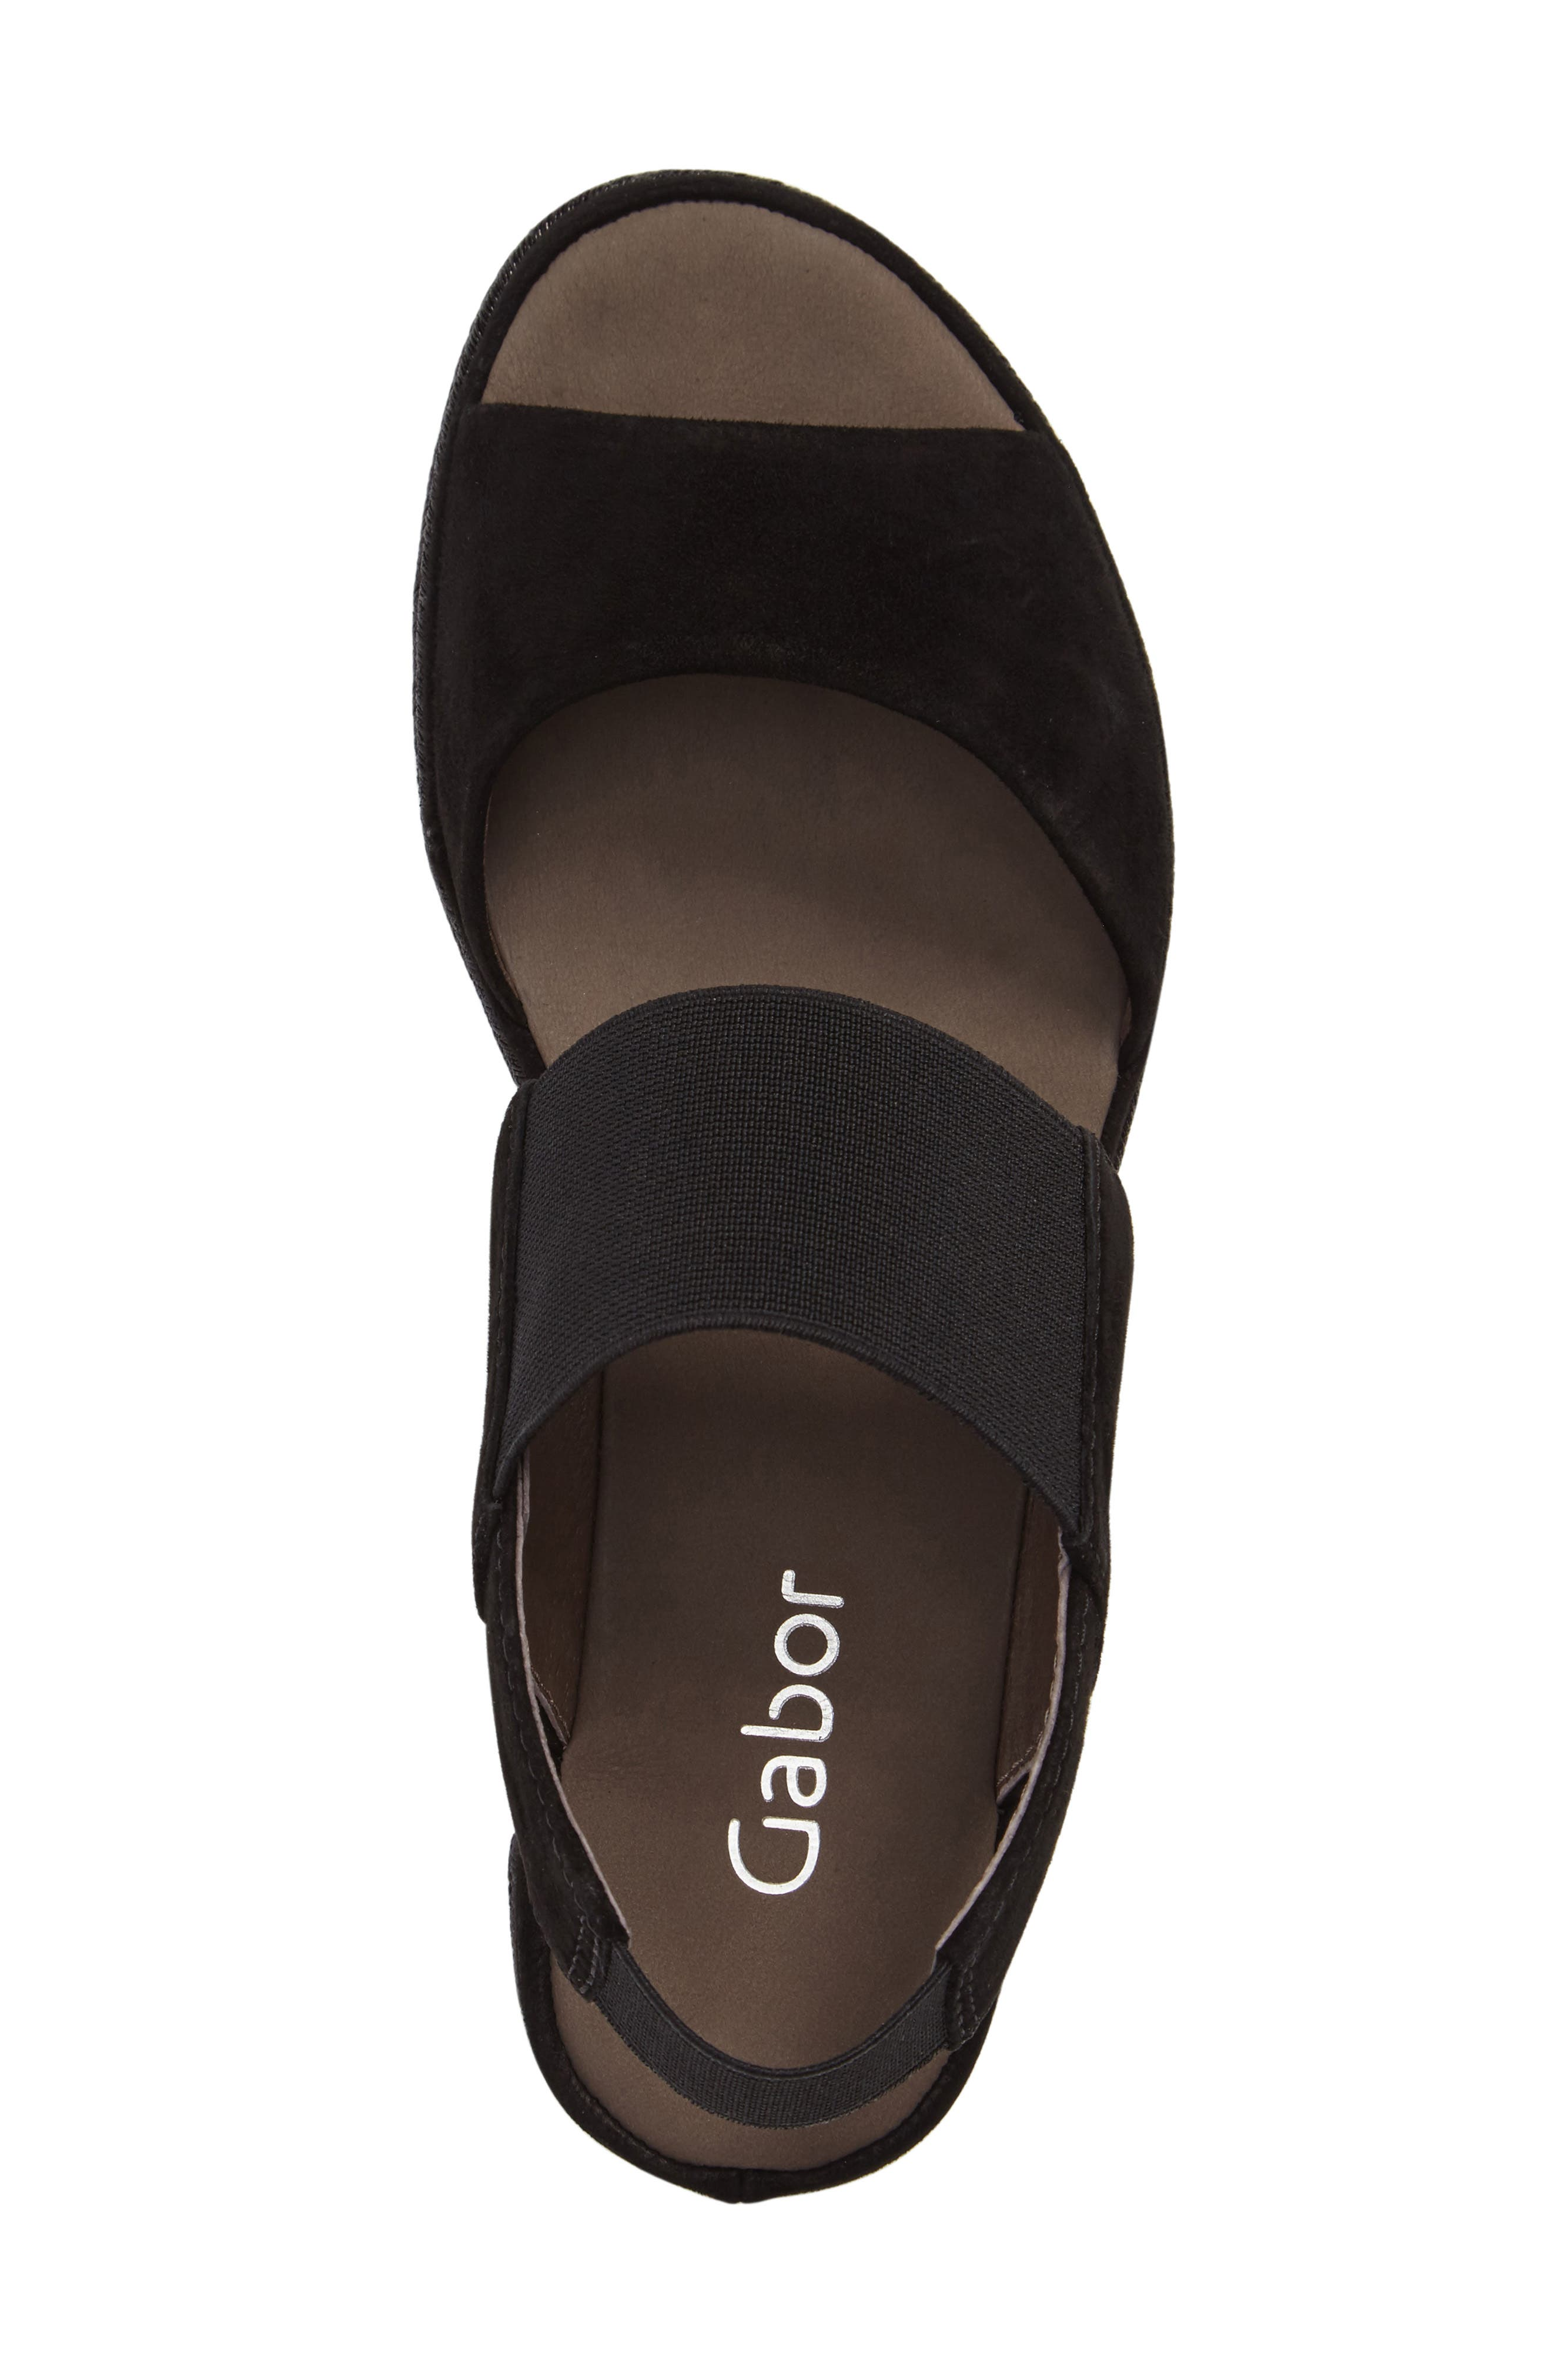 Low Wedge Sandal,                             Alternate thumbnail 5, color,                             001